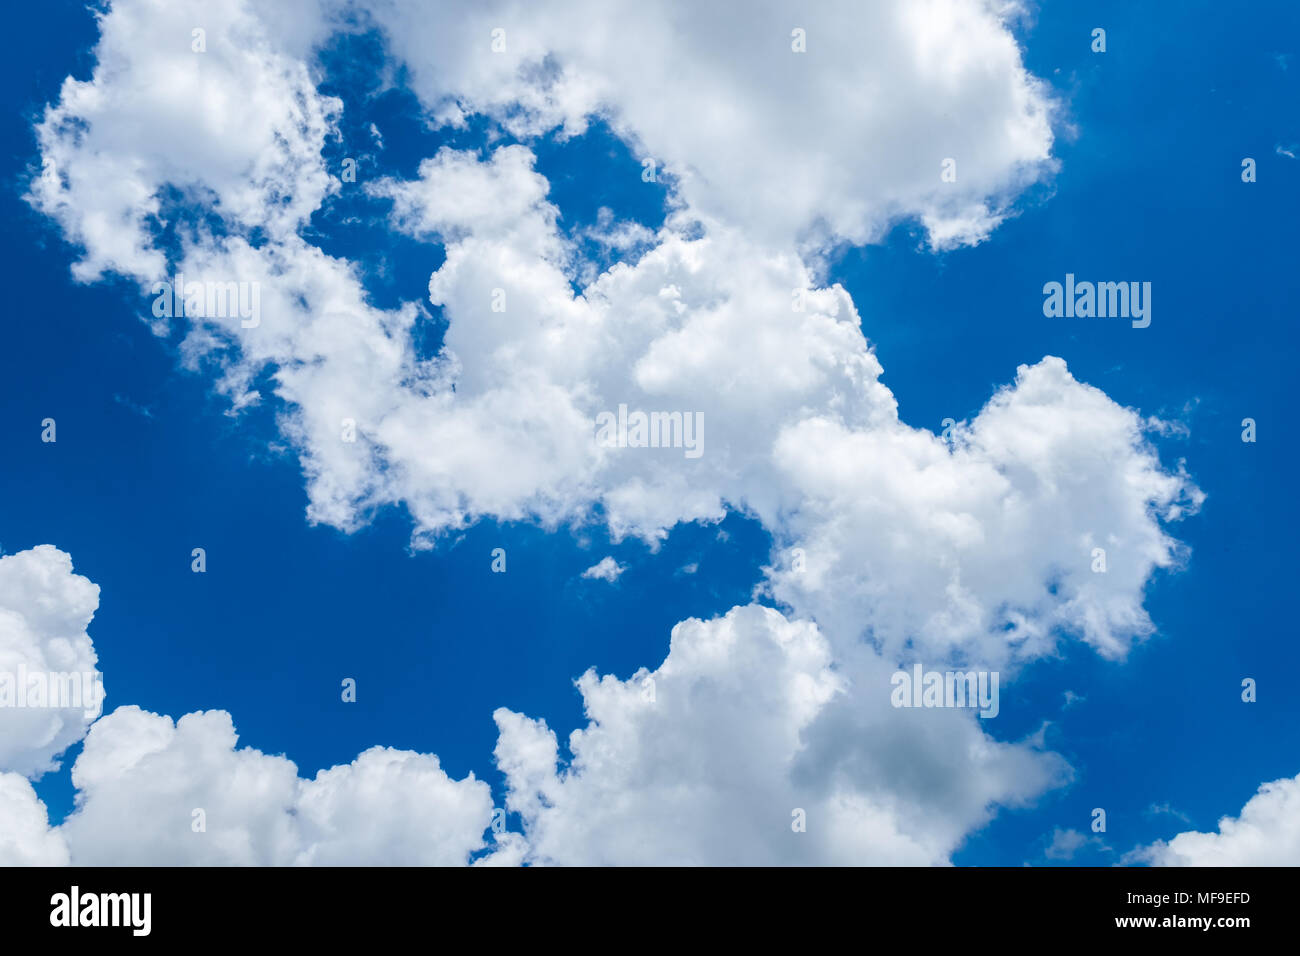 White cumulus clouds in deep blue sky. Cloudscape. Natural abstract background. - Stock Image